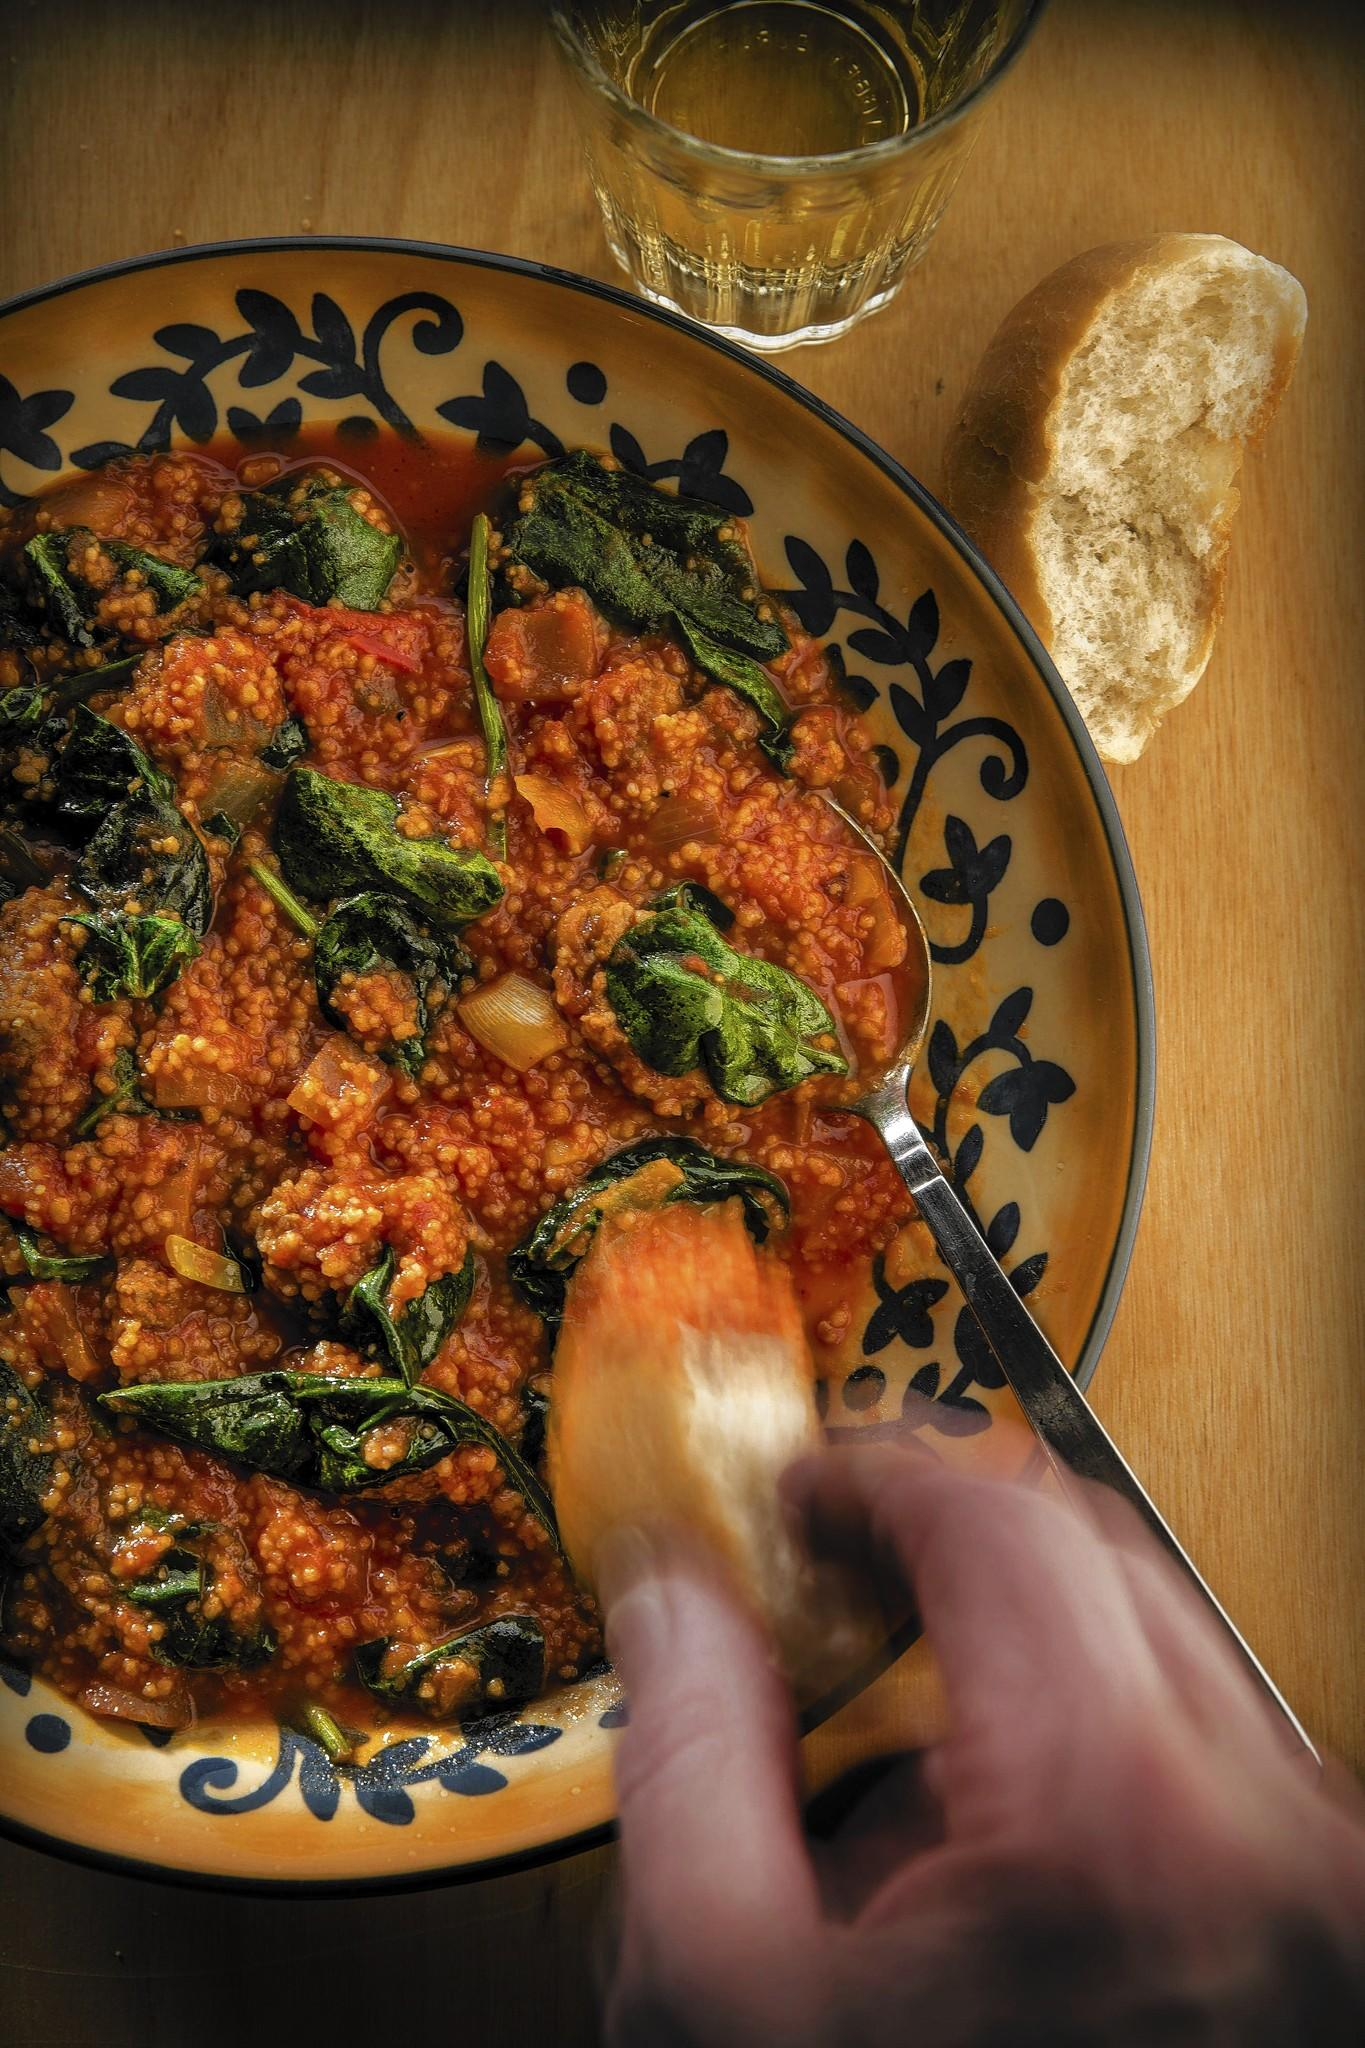 Finished dish photo of spinach with couscous.